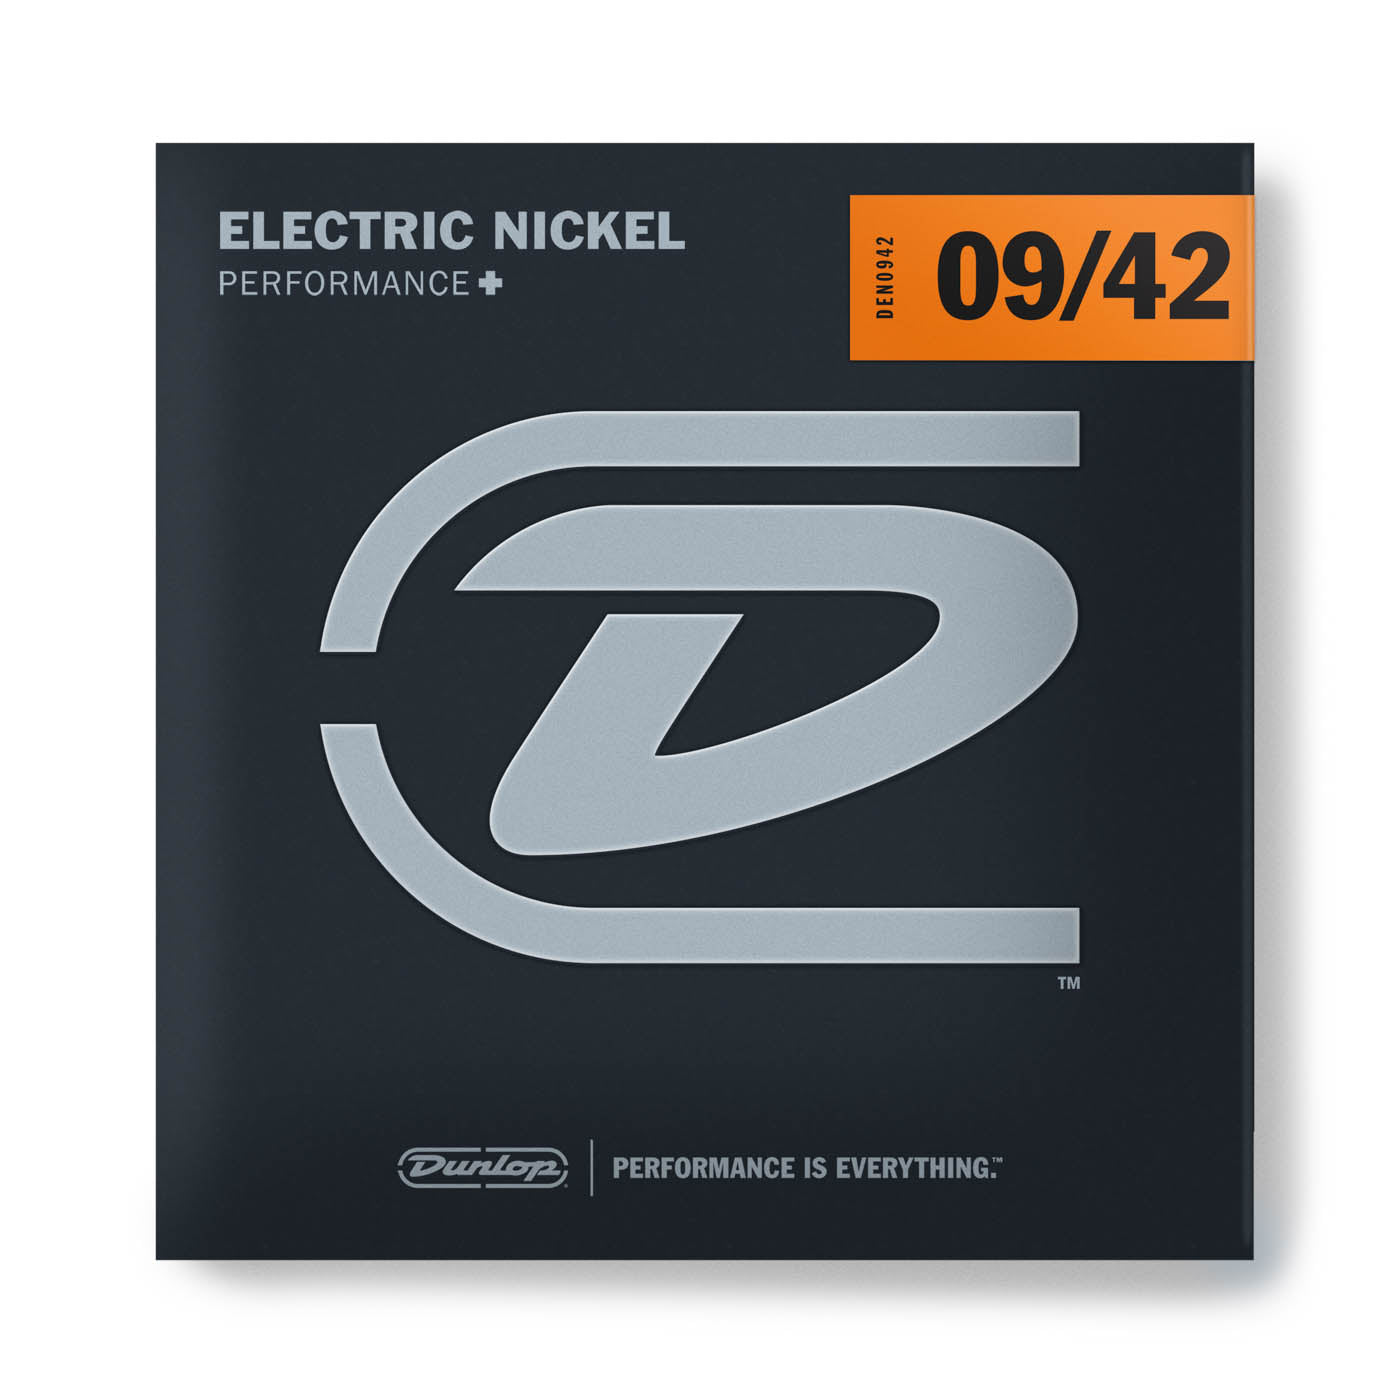 Dunlop Performance+ Nickel Wound Electric Guitar Strings - 09/42